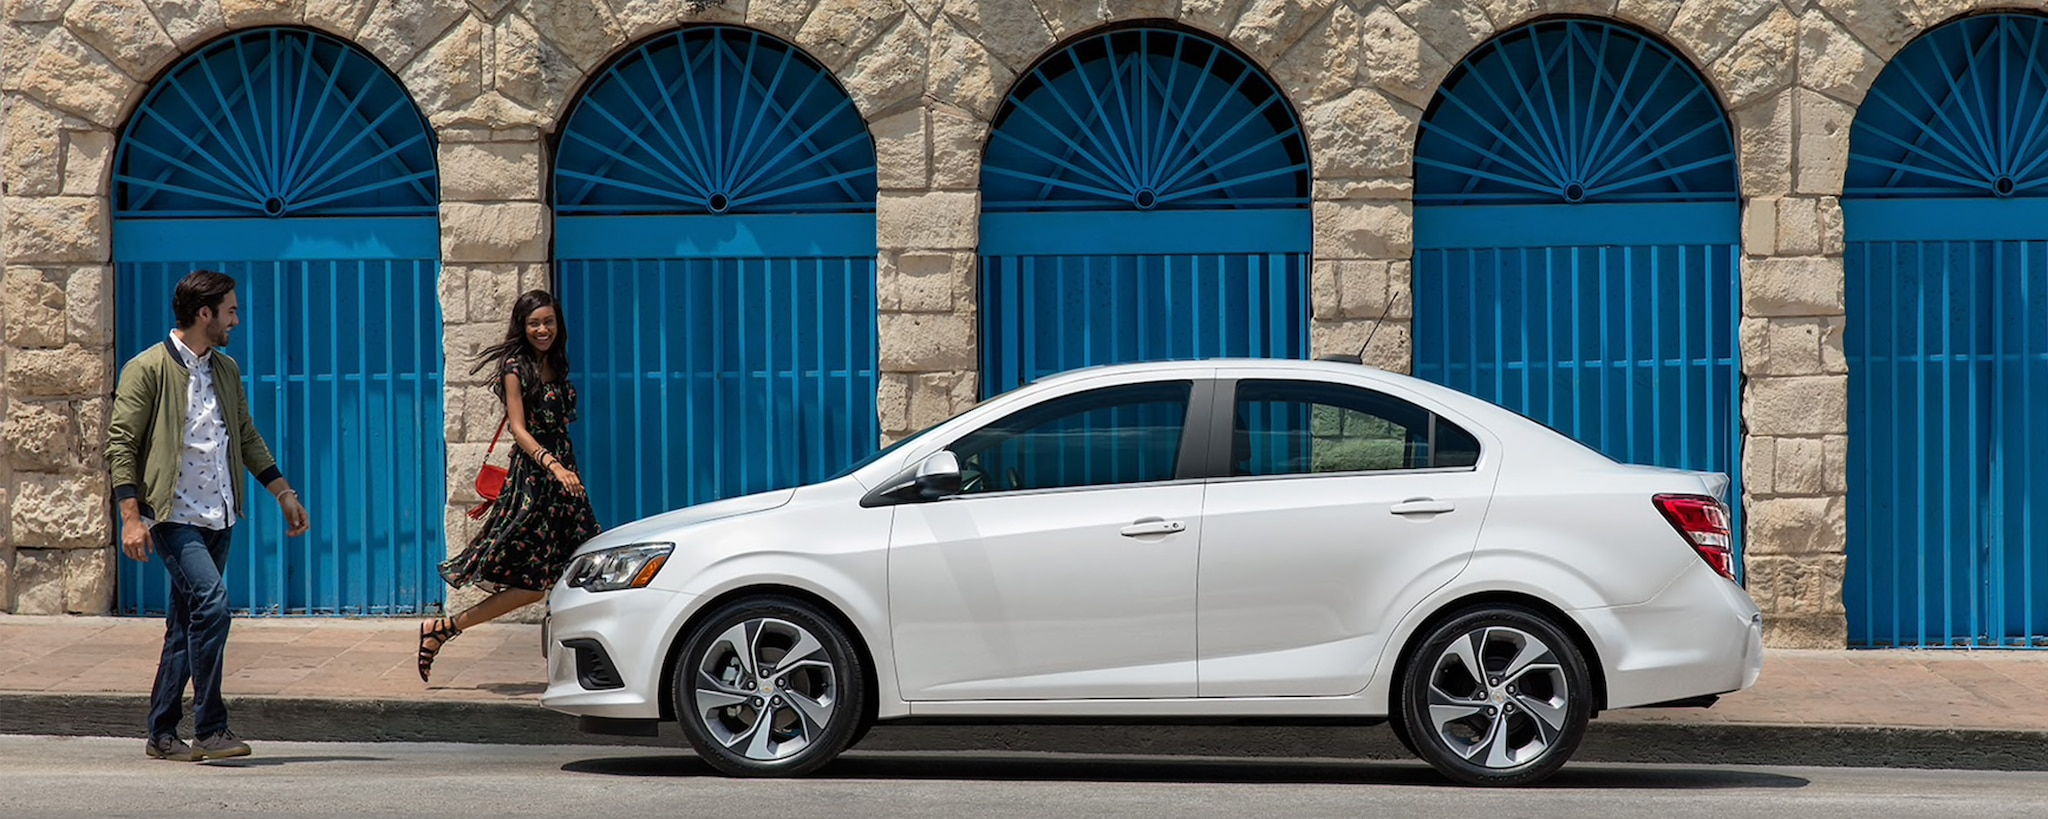 2019 Chevrolet Sonic Small Car Side Exterior